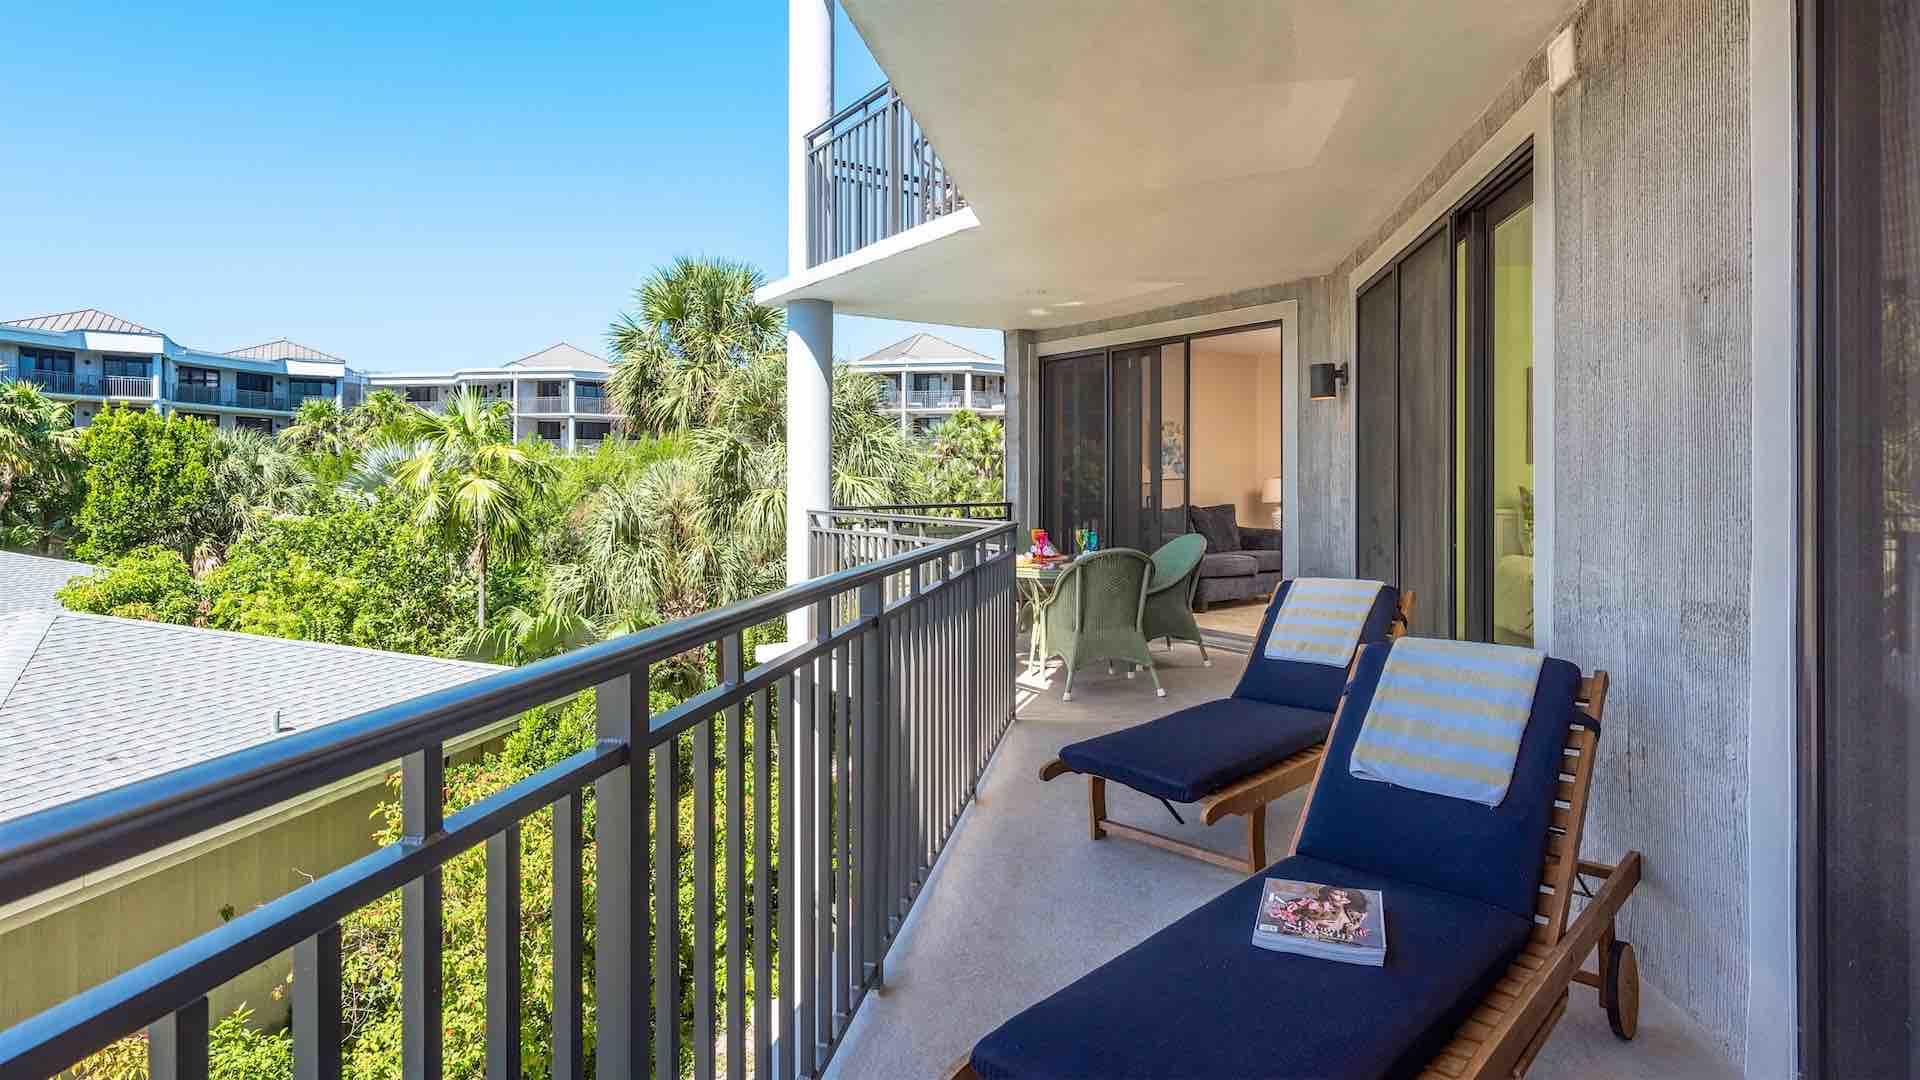 The balcony has two chaise lounges for ultimate relaxation...